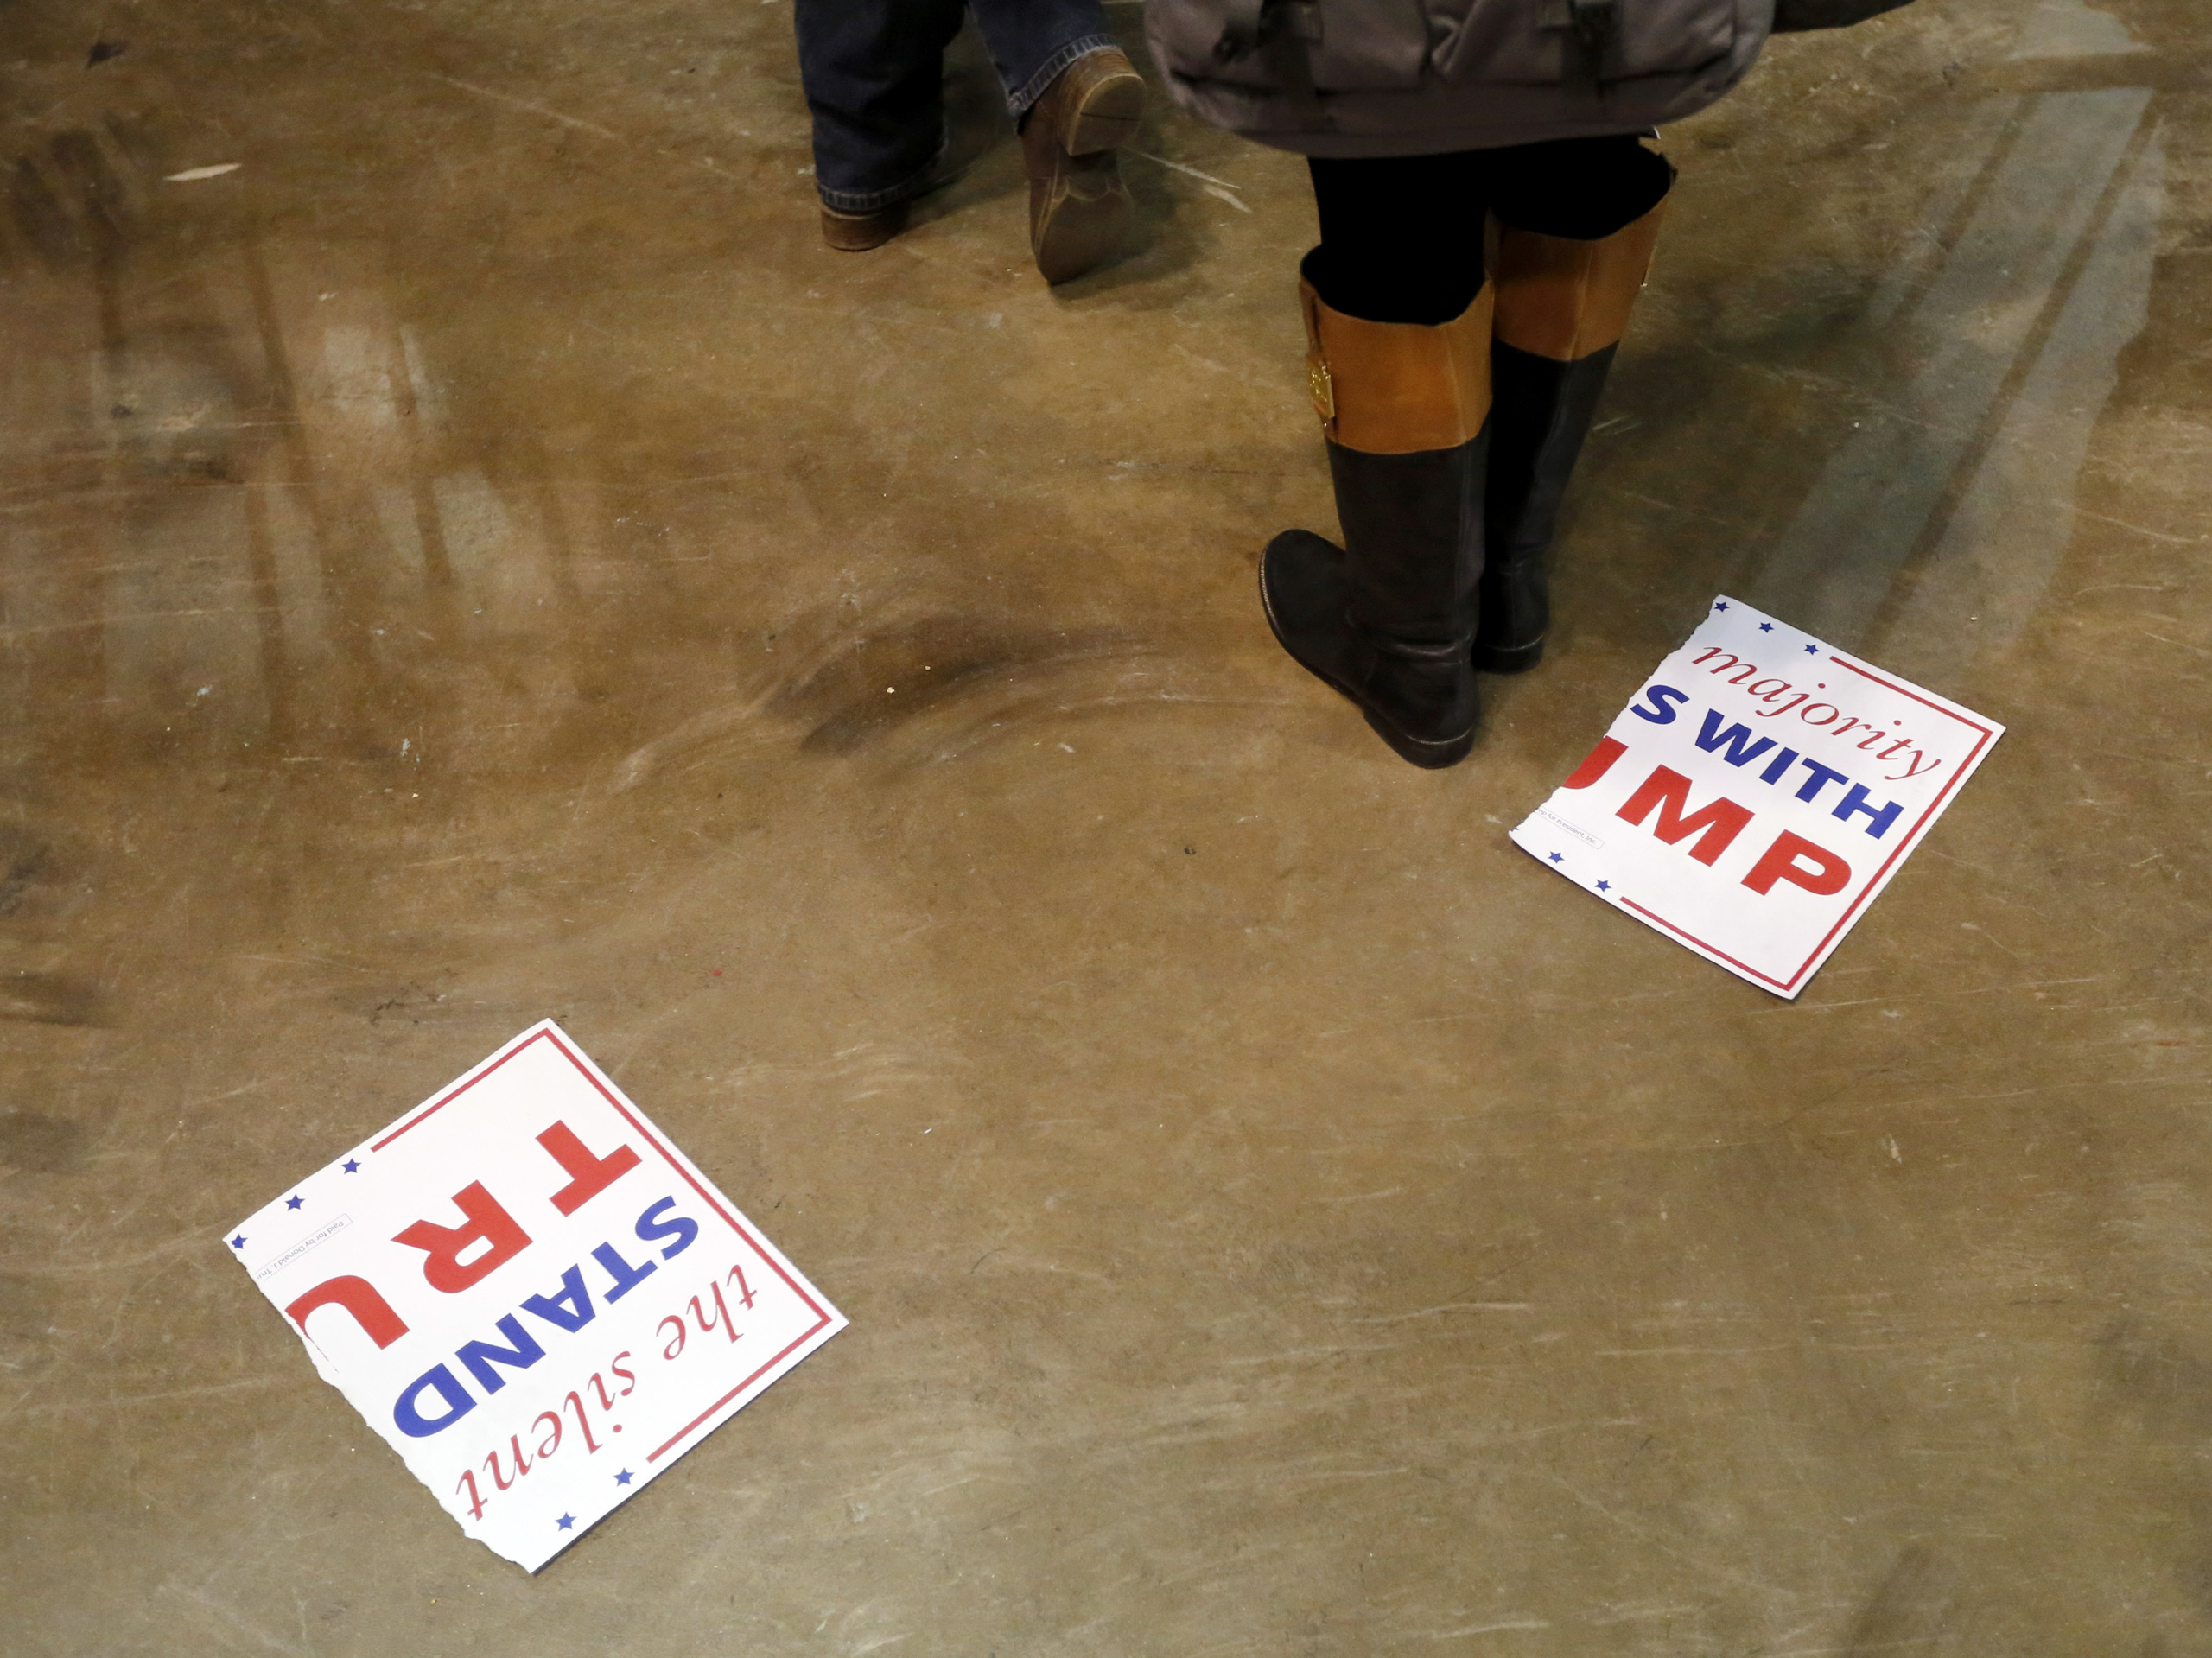 A torn campaign sign lays on the floor after a rally for Trump was canceled due to security concerns at the University of Illinois-Chicago in Chicago on March 11, 2016.